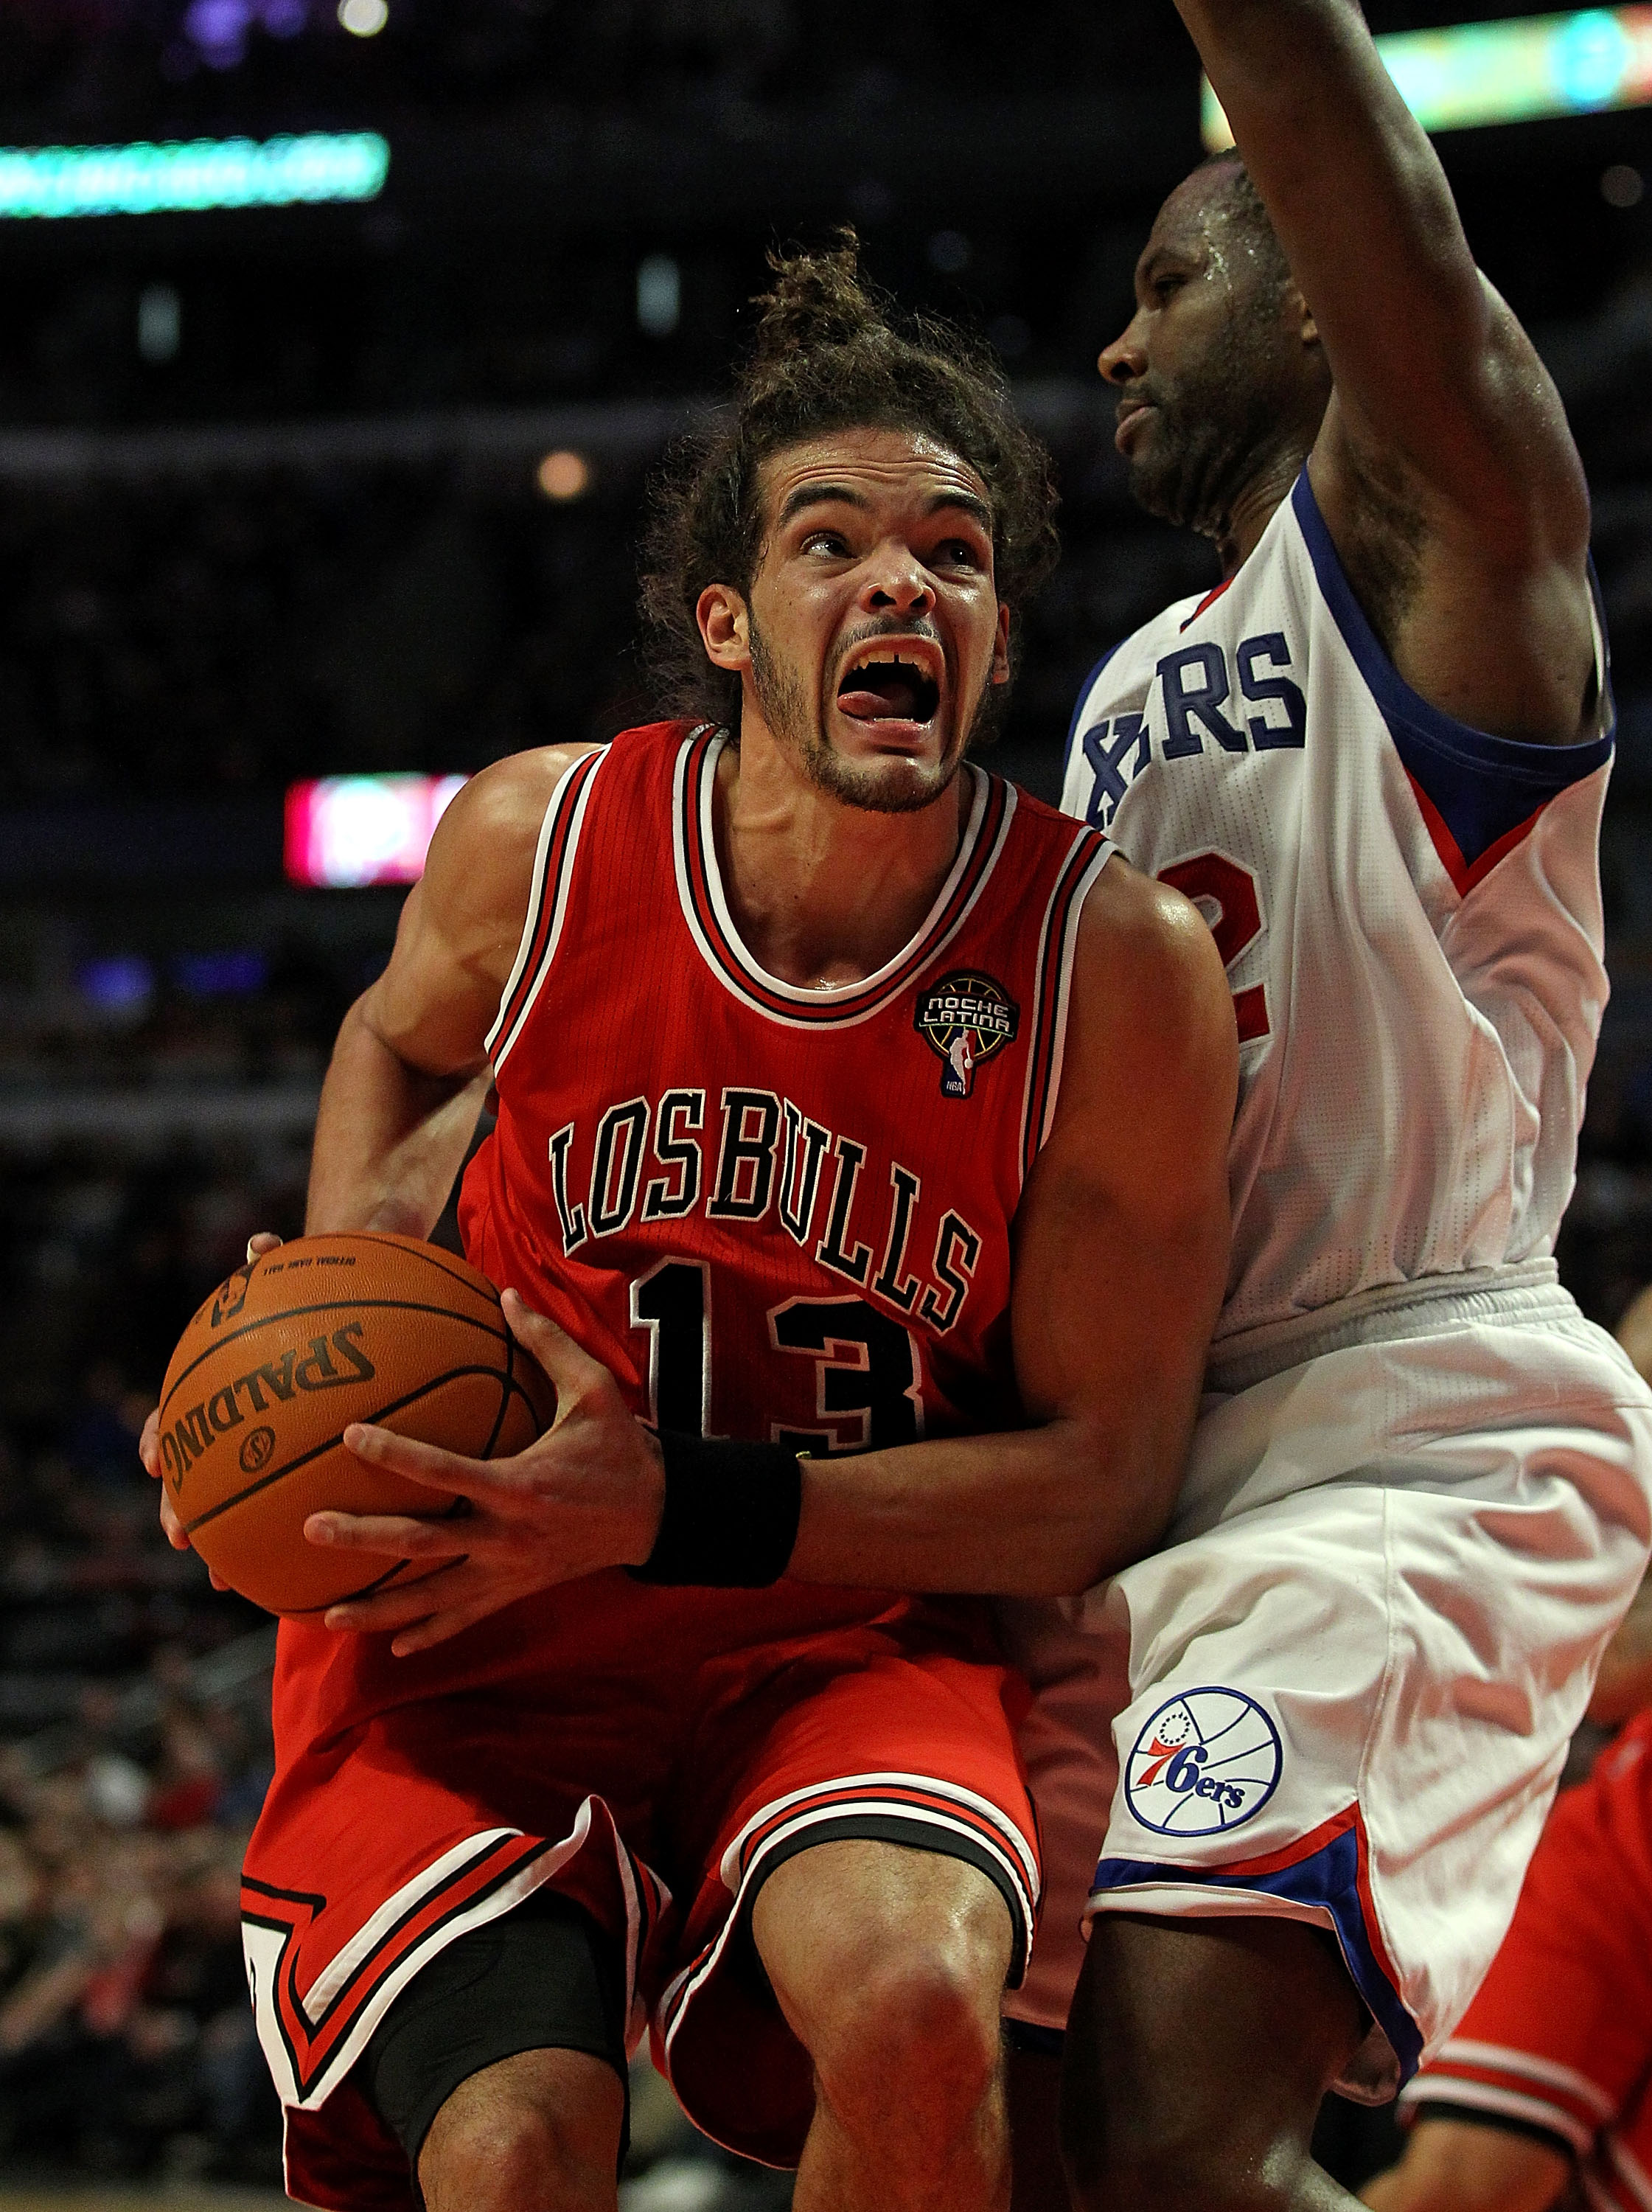 CHICAGO, IL - MARCH 28: Joakim Noah #13 of the Chicago Bulls moves against Elton Brand #42 of the Philadelphia 76ers at the United Center on March 28, 2011 in Chicago, Illinois. The 76ers defeated the Bulls 97-85. NOTE TO USER: User expressly acknowledges